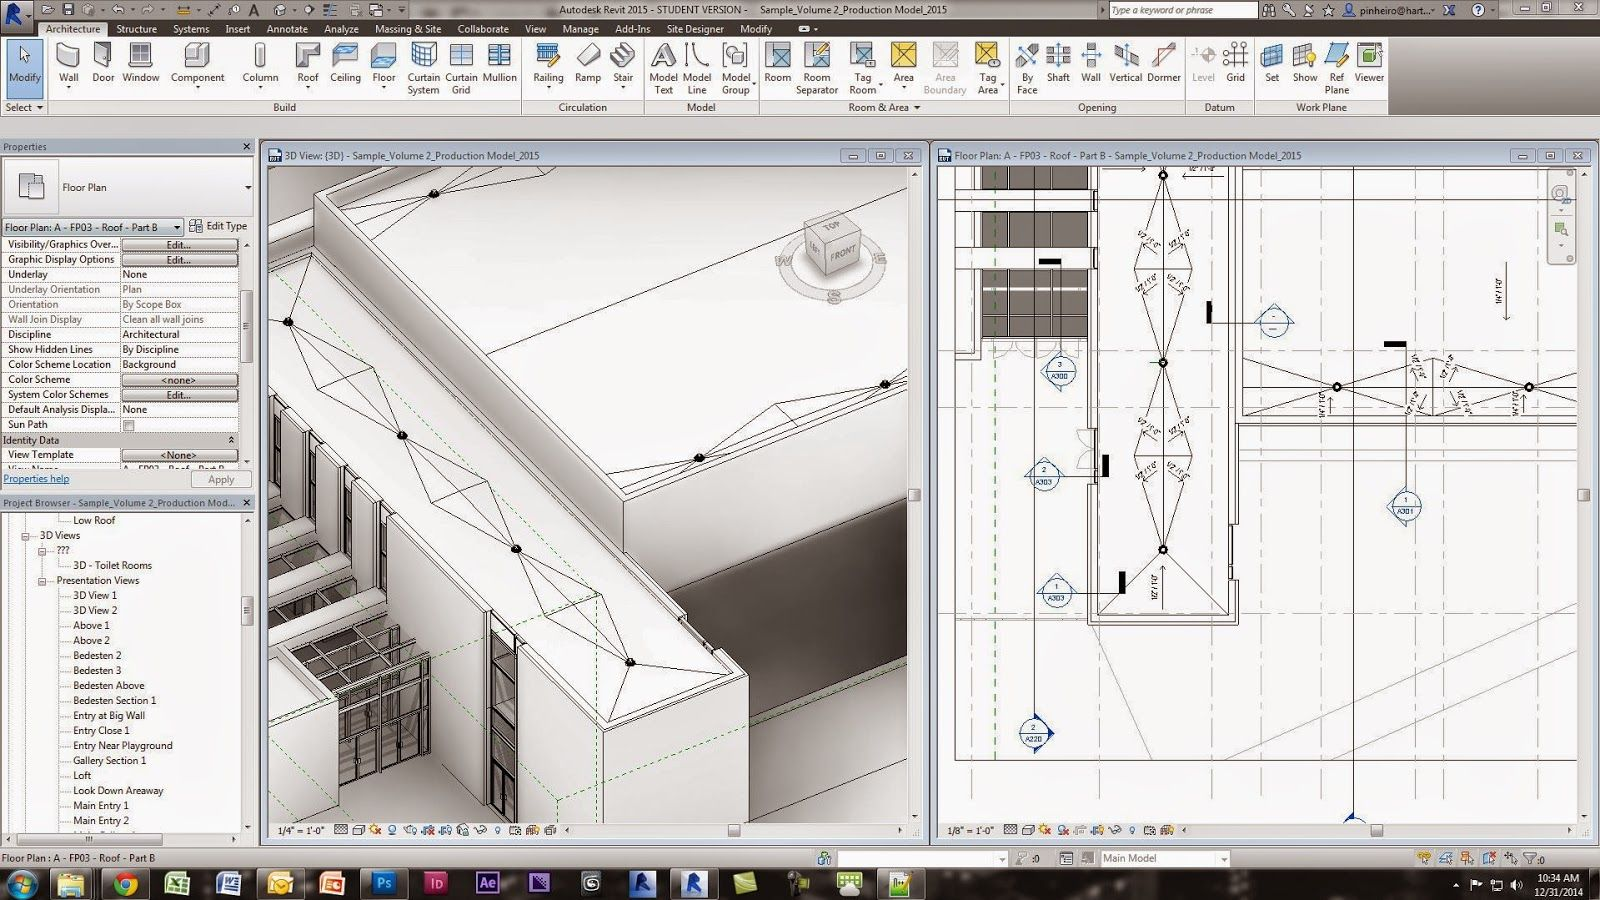 Revit Tutorial Flat Roof Crickets And Documentation Therevitkid Com Tutorials Tips Products And Informati Revit Tutorial Flat Roof Revit Architecture